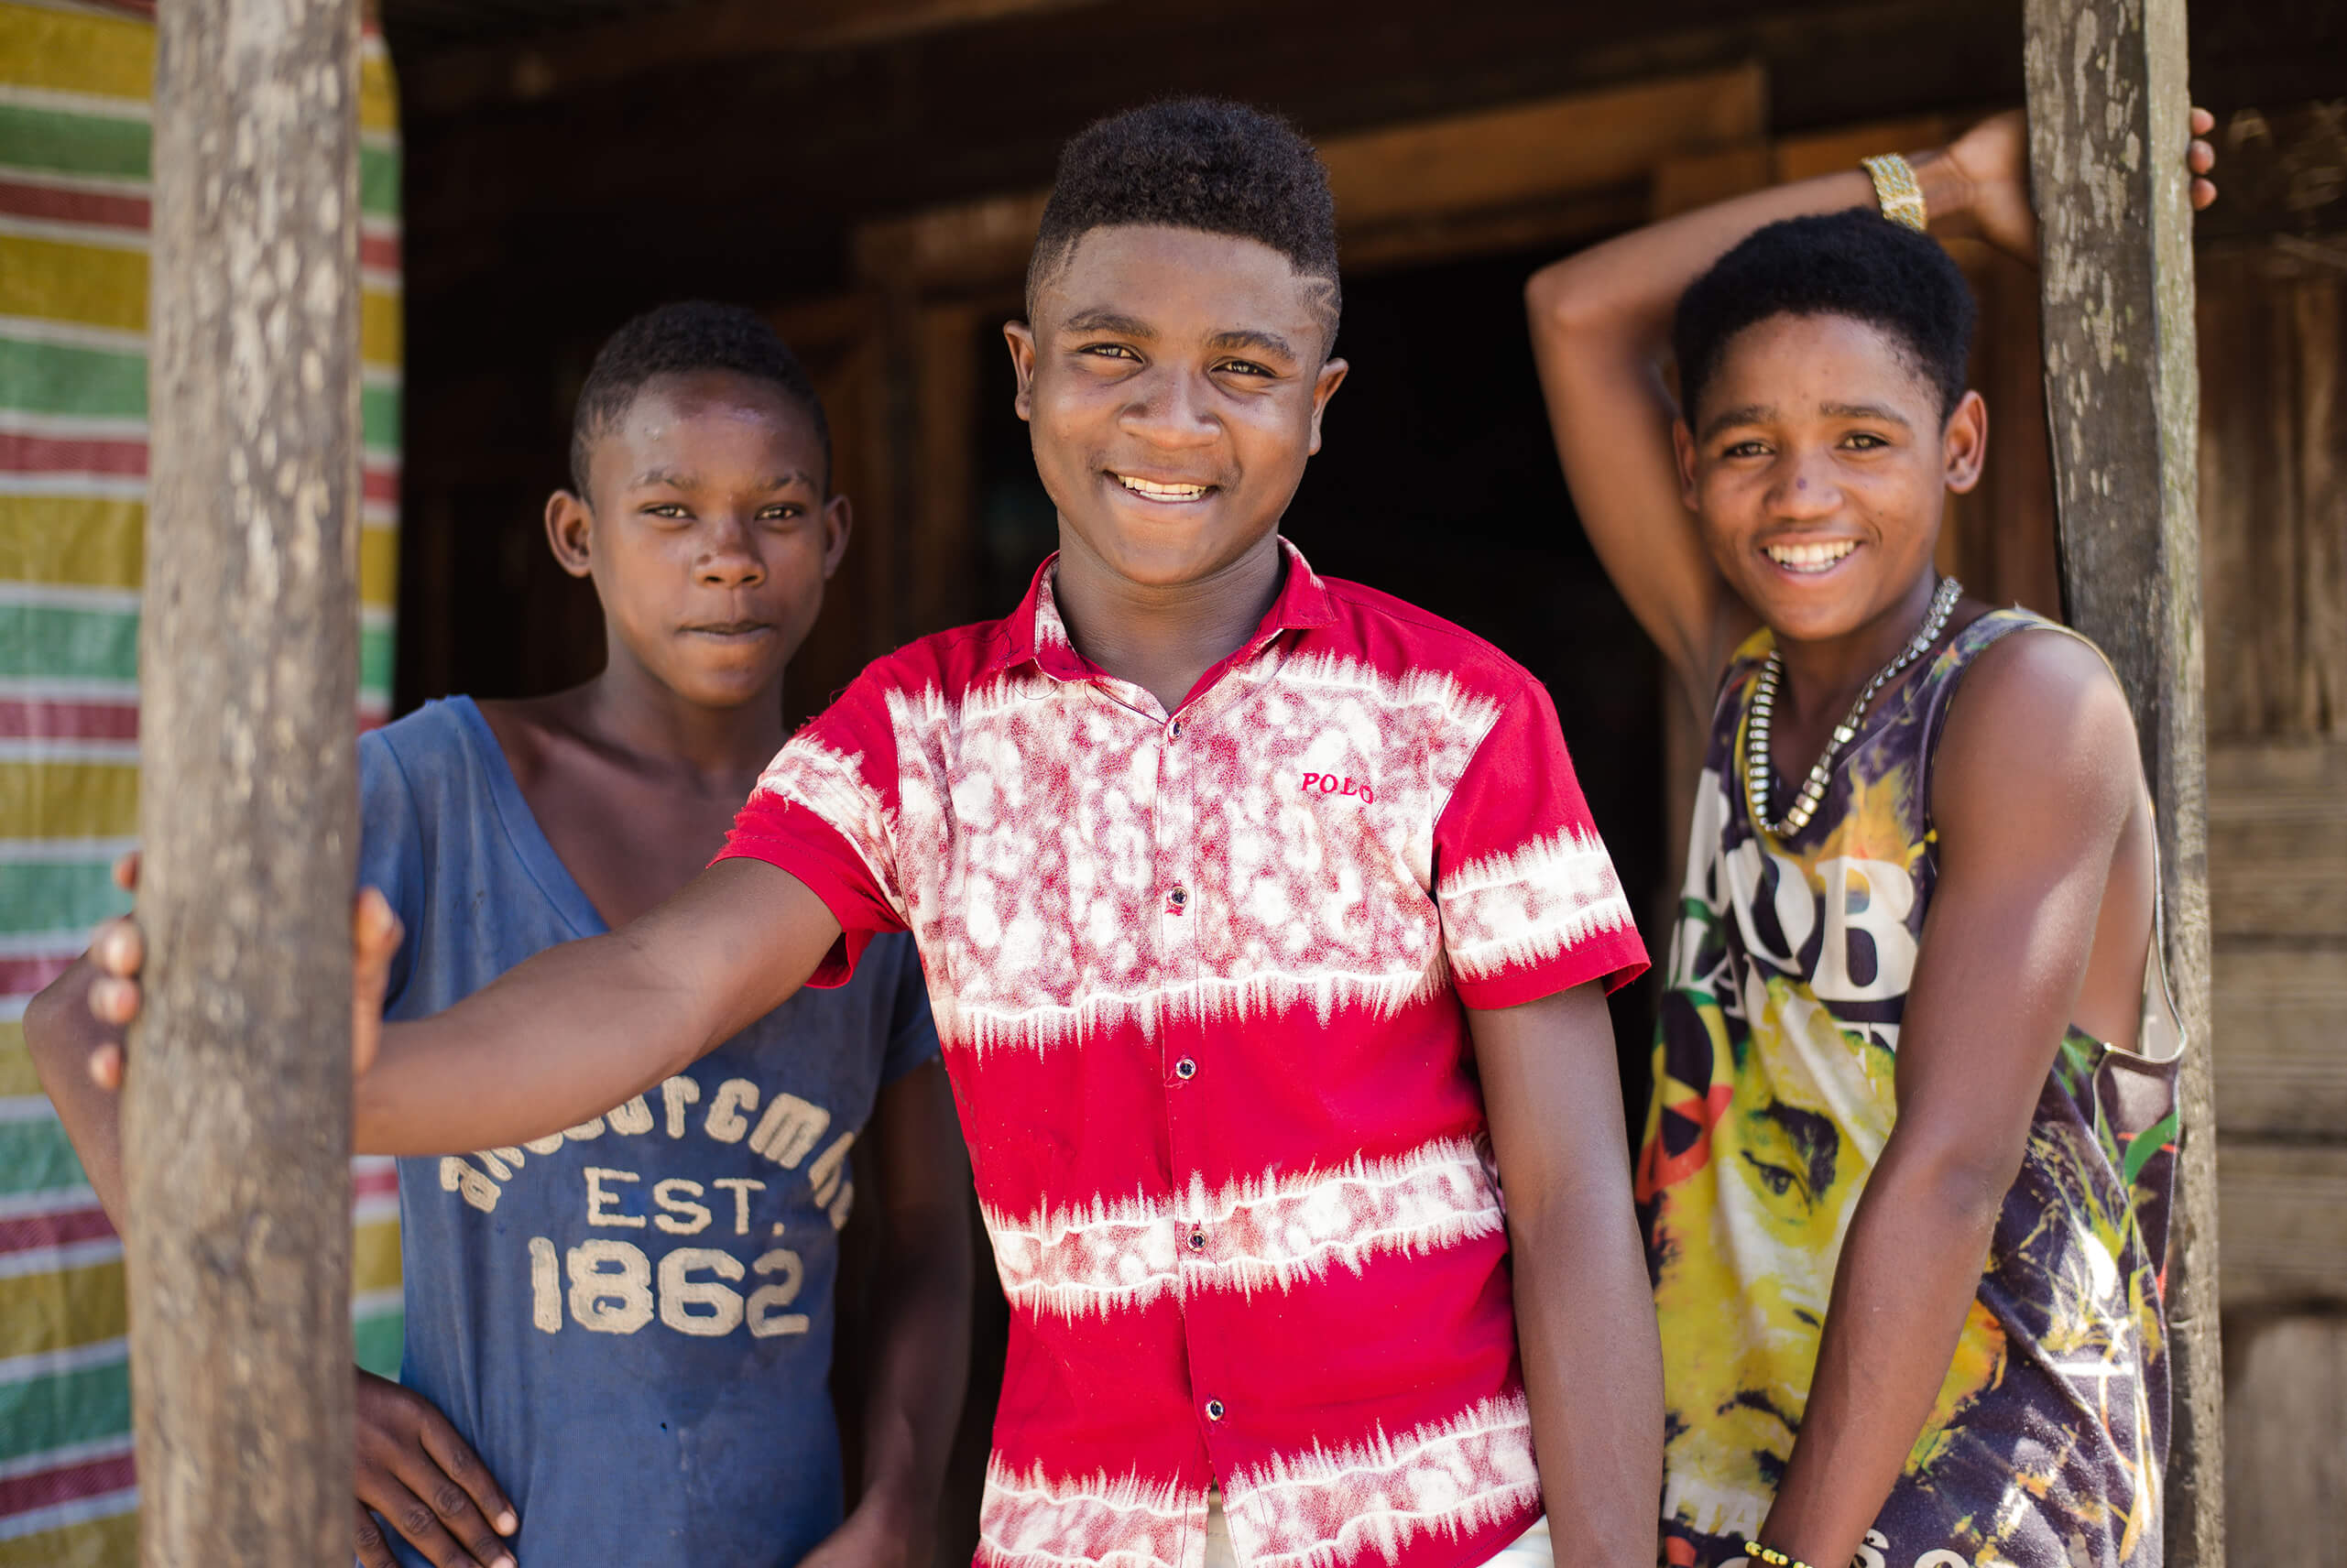 Bolo, 18 (centre), stands with friends Barthez, 17 (left) and Narco, 15 (right) from the youth association in their village in the Sava region of Madagascar